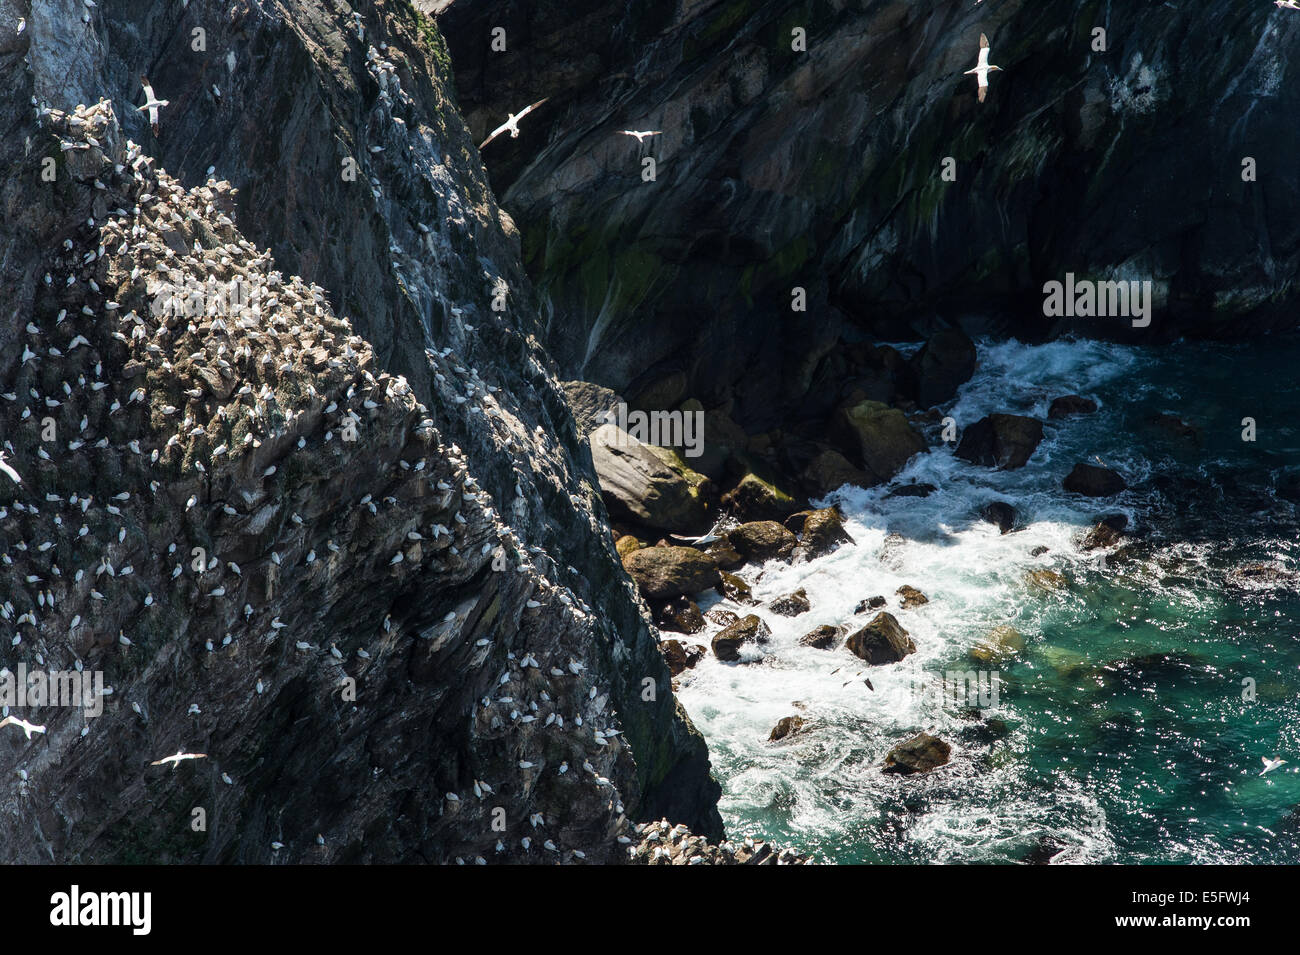 Scenery looking down from top of rocks at Hermaness, Unst, Shetland Island. - Stock Image